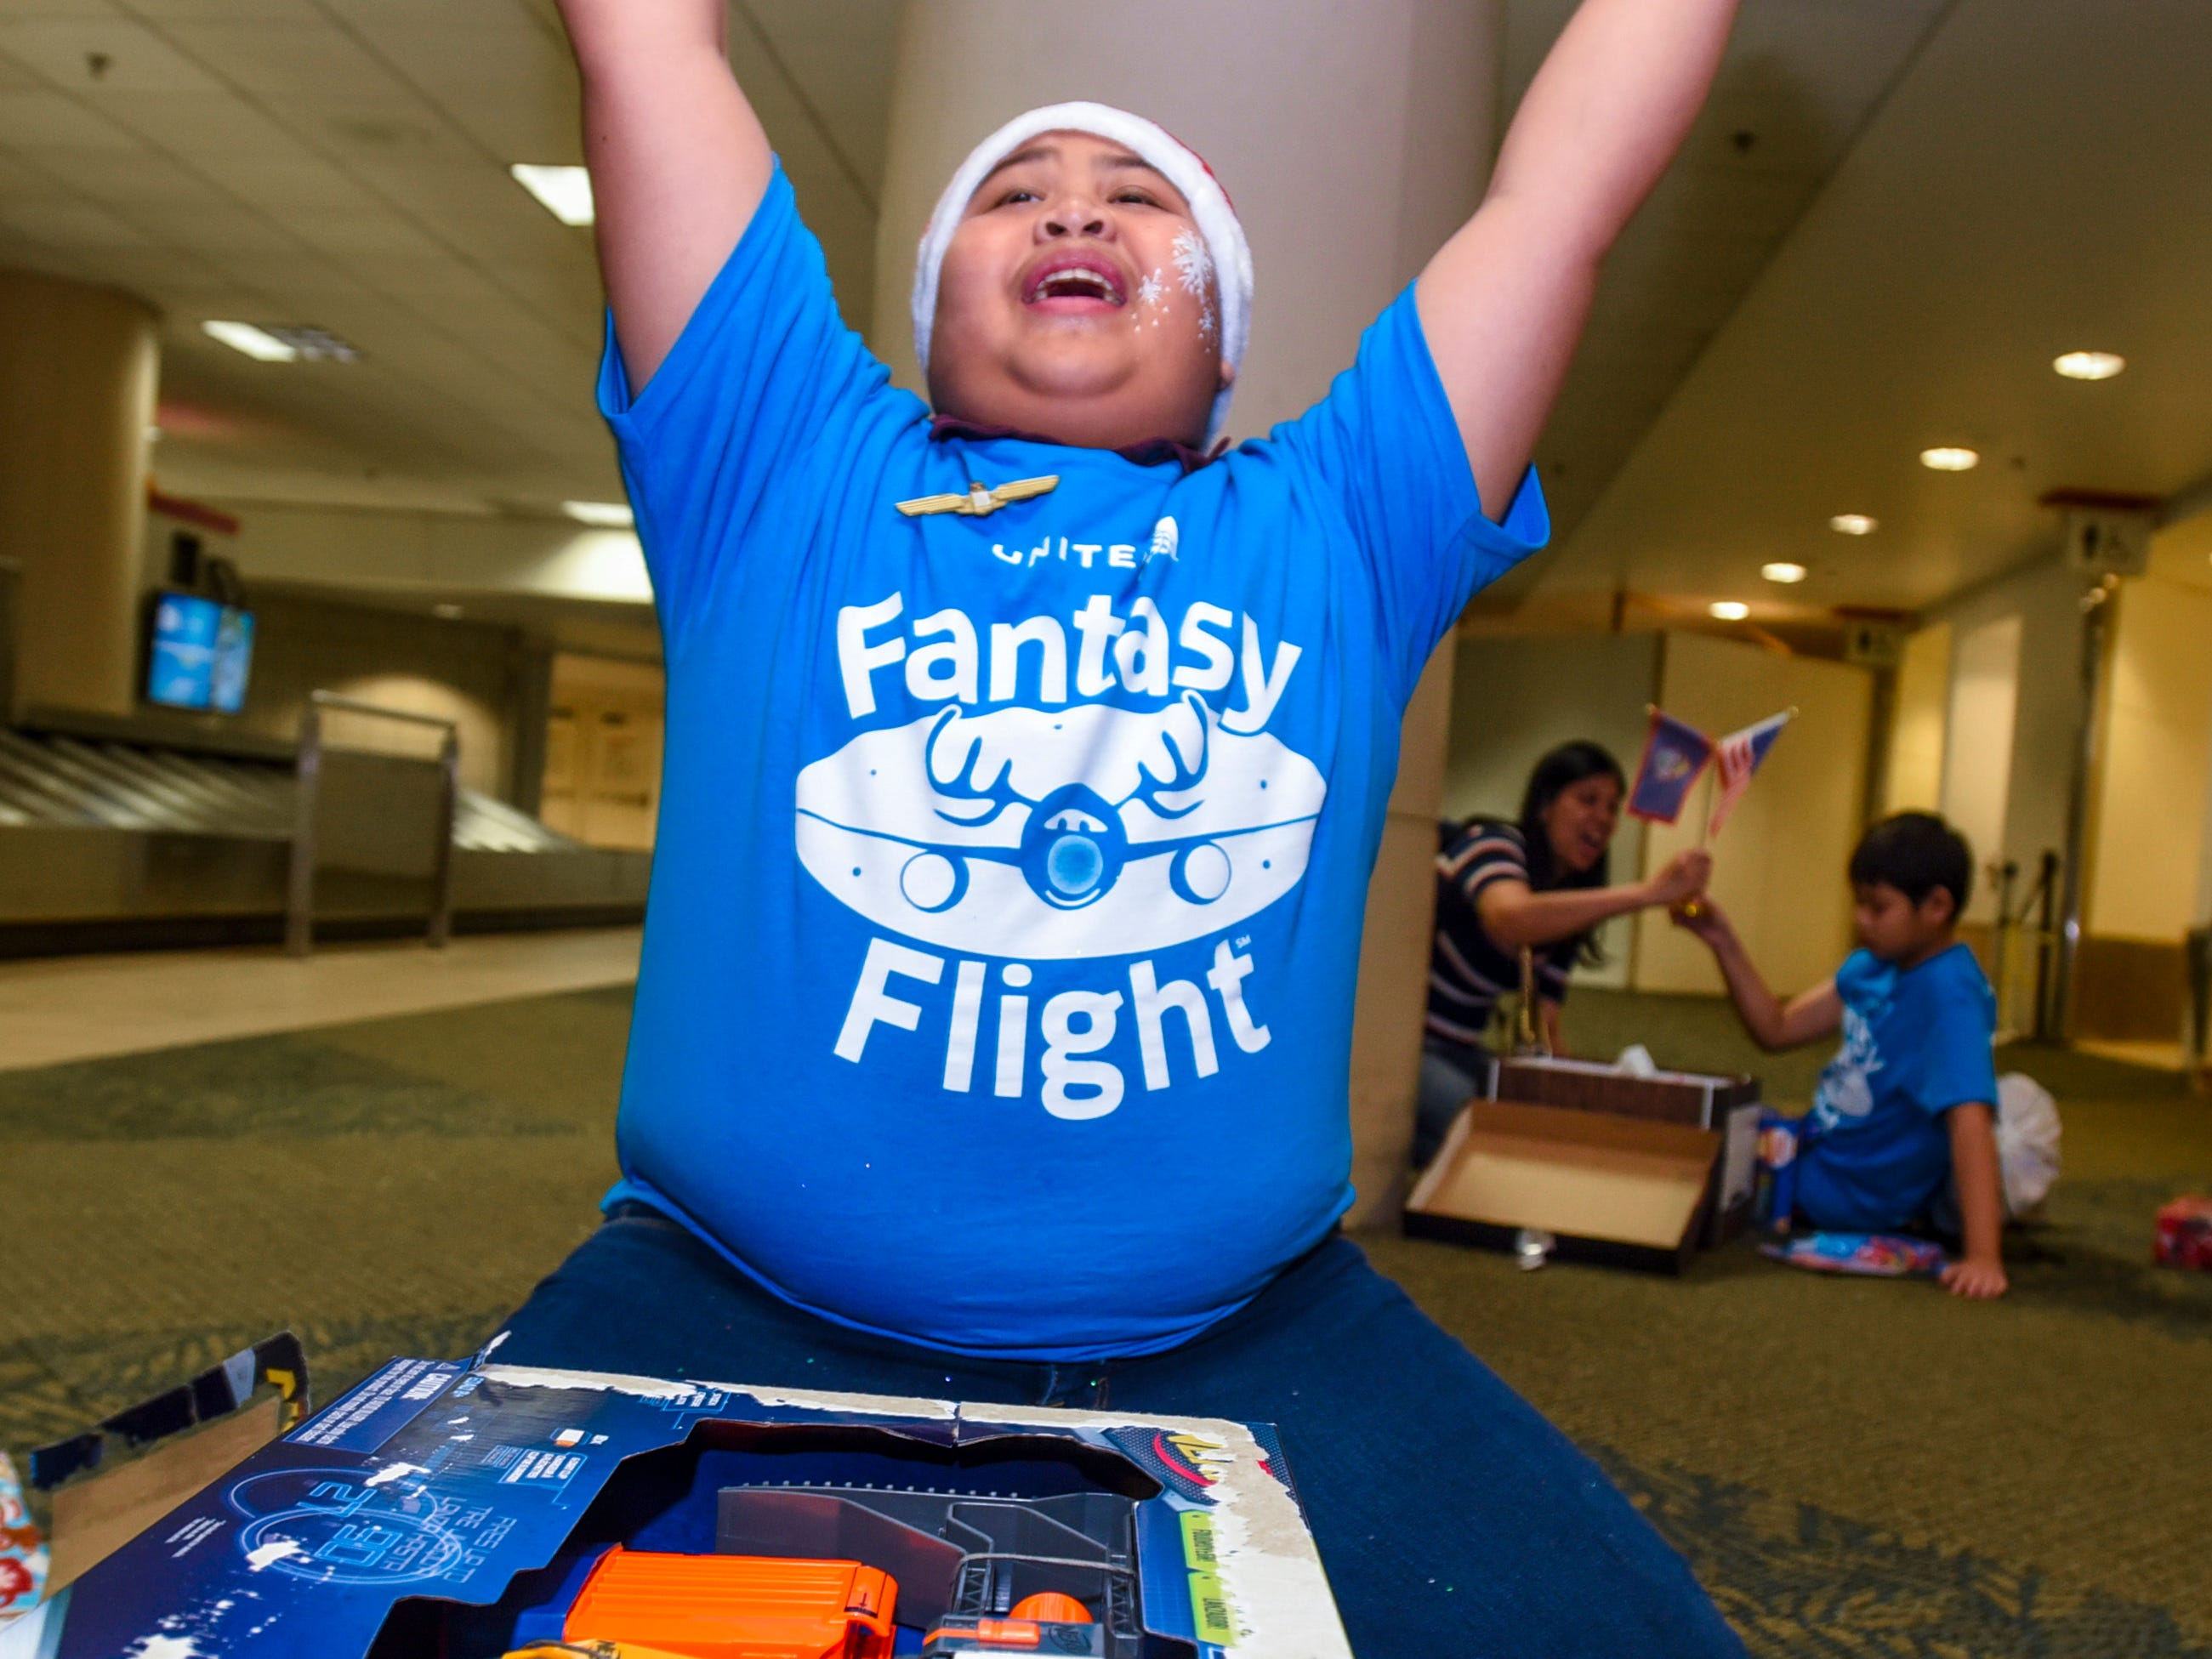 Jarod Joshua, 12, throws his arms up into the air in celebration after discovering the gift of a toy Nerf gun waiting for him on a luggage carousel during the finale of United Airlines' Fantasy Flight at the A.B. Won Pat International Airport on Friday, Dec. 7, 2018. Joshua and 32 other Guam Special Olympians were presented with an experience to enjoy live entertainment, food, games, holiday cookie decorating and face paintings after a make-believe flight to visit Santa Claus and his helpers. The event was the air carrier's fifth consecutive year of sharing holiday cheer with a group of the island's deserving children. This year, the airline's Guam hub was joined by 15 other United destinations around the globe in celebrating the holiday event.